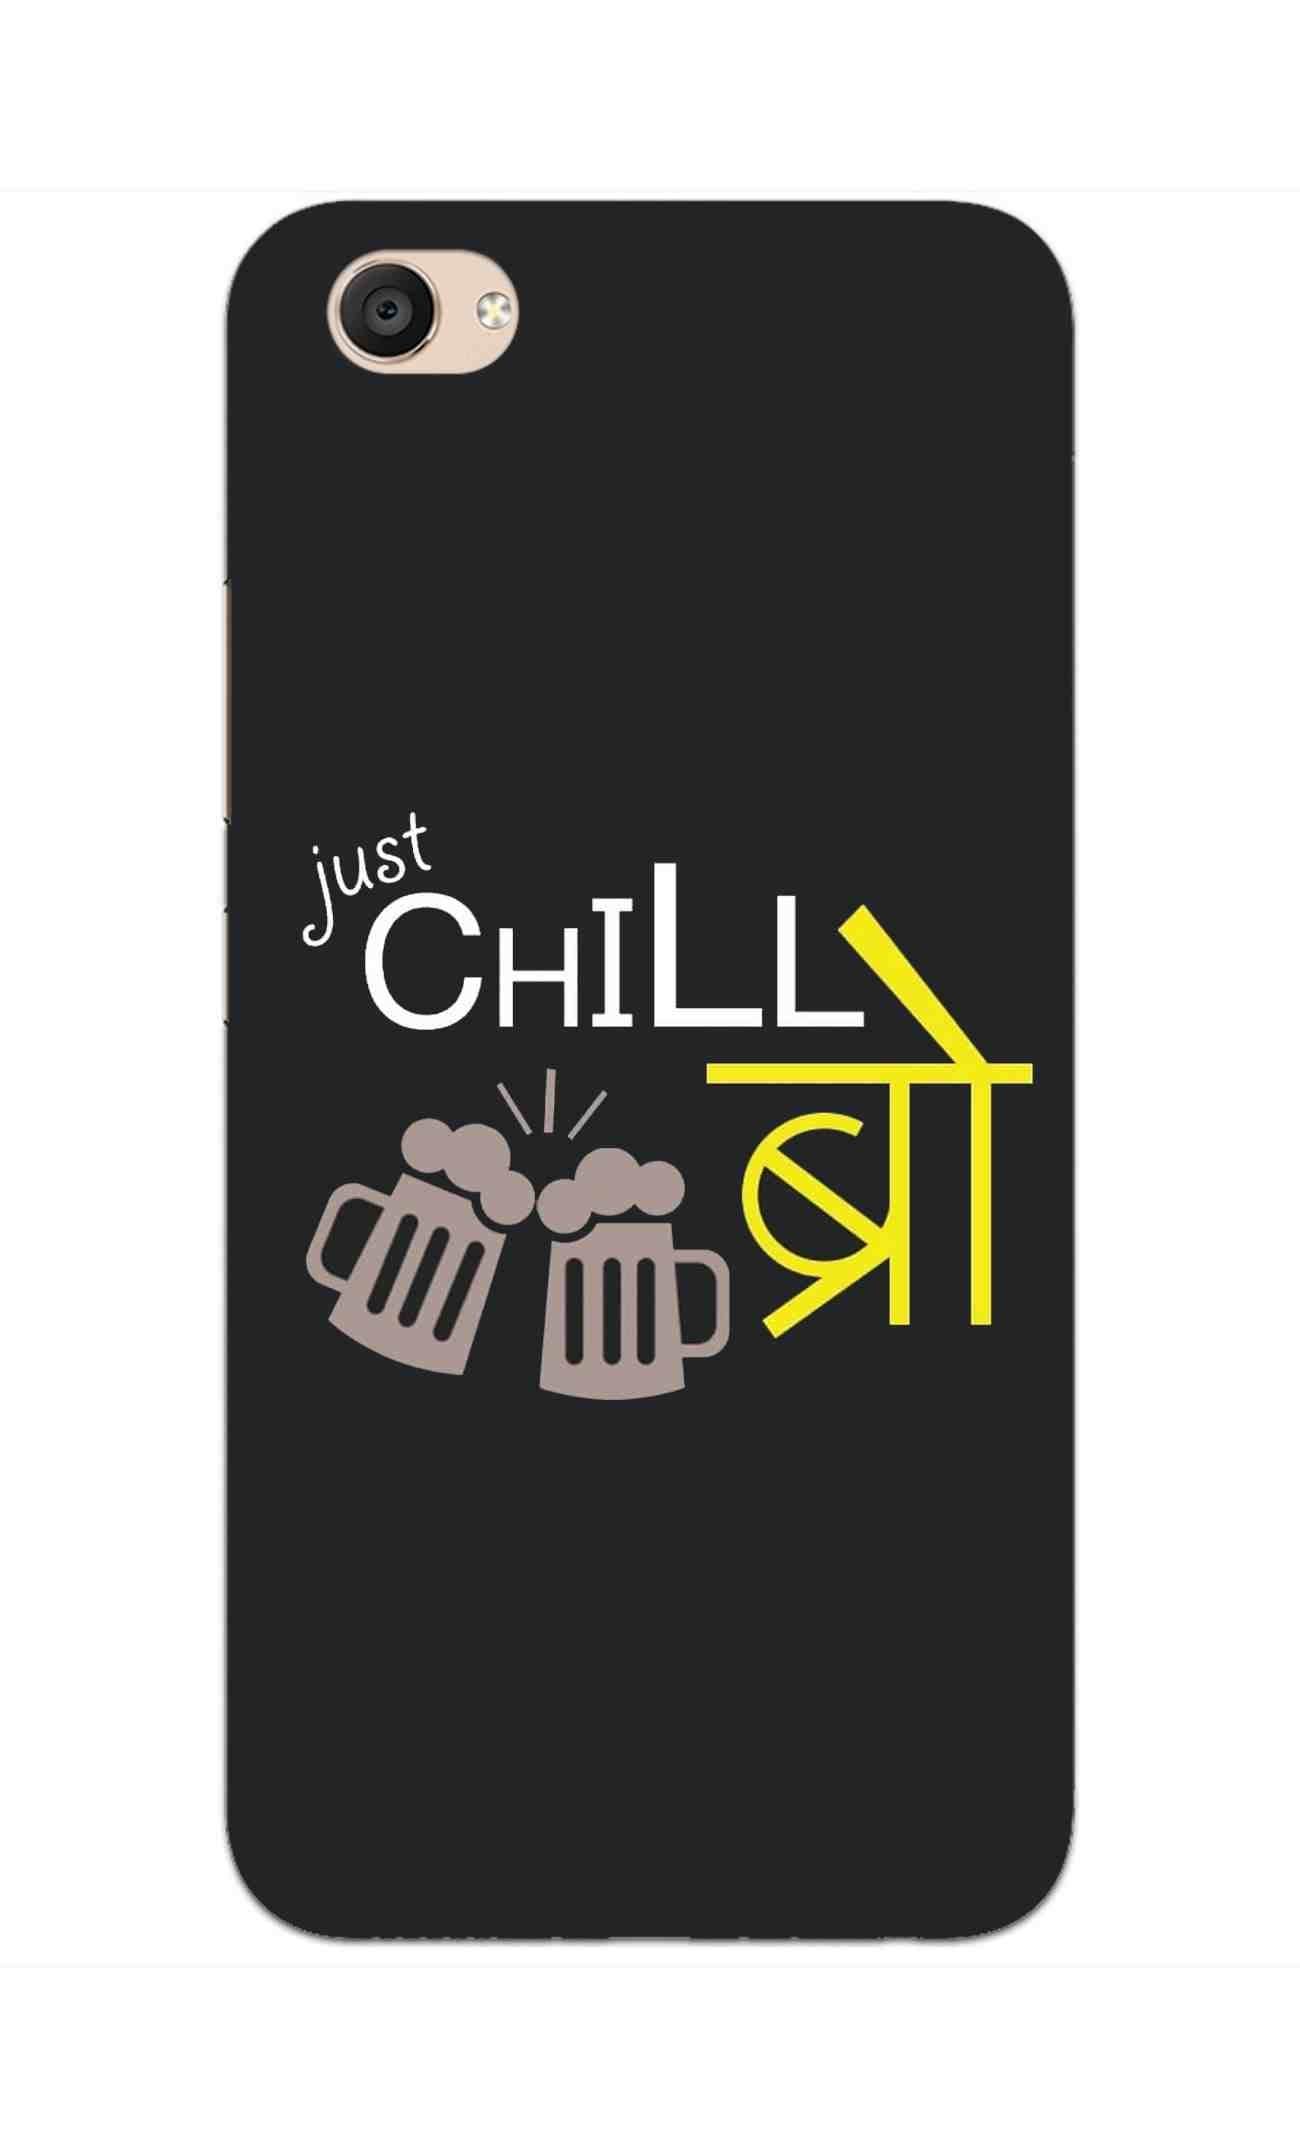 Just Chill Bro Typography Vivo V5 Plus Mobile Cover Case - MADANYU